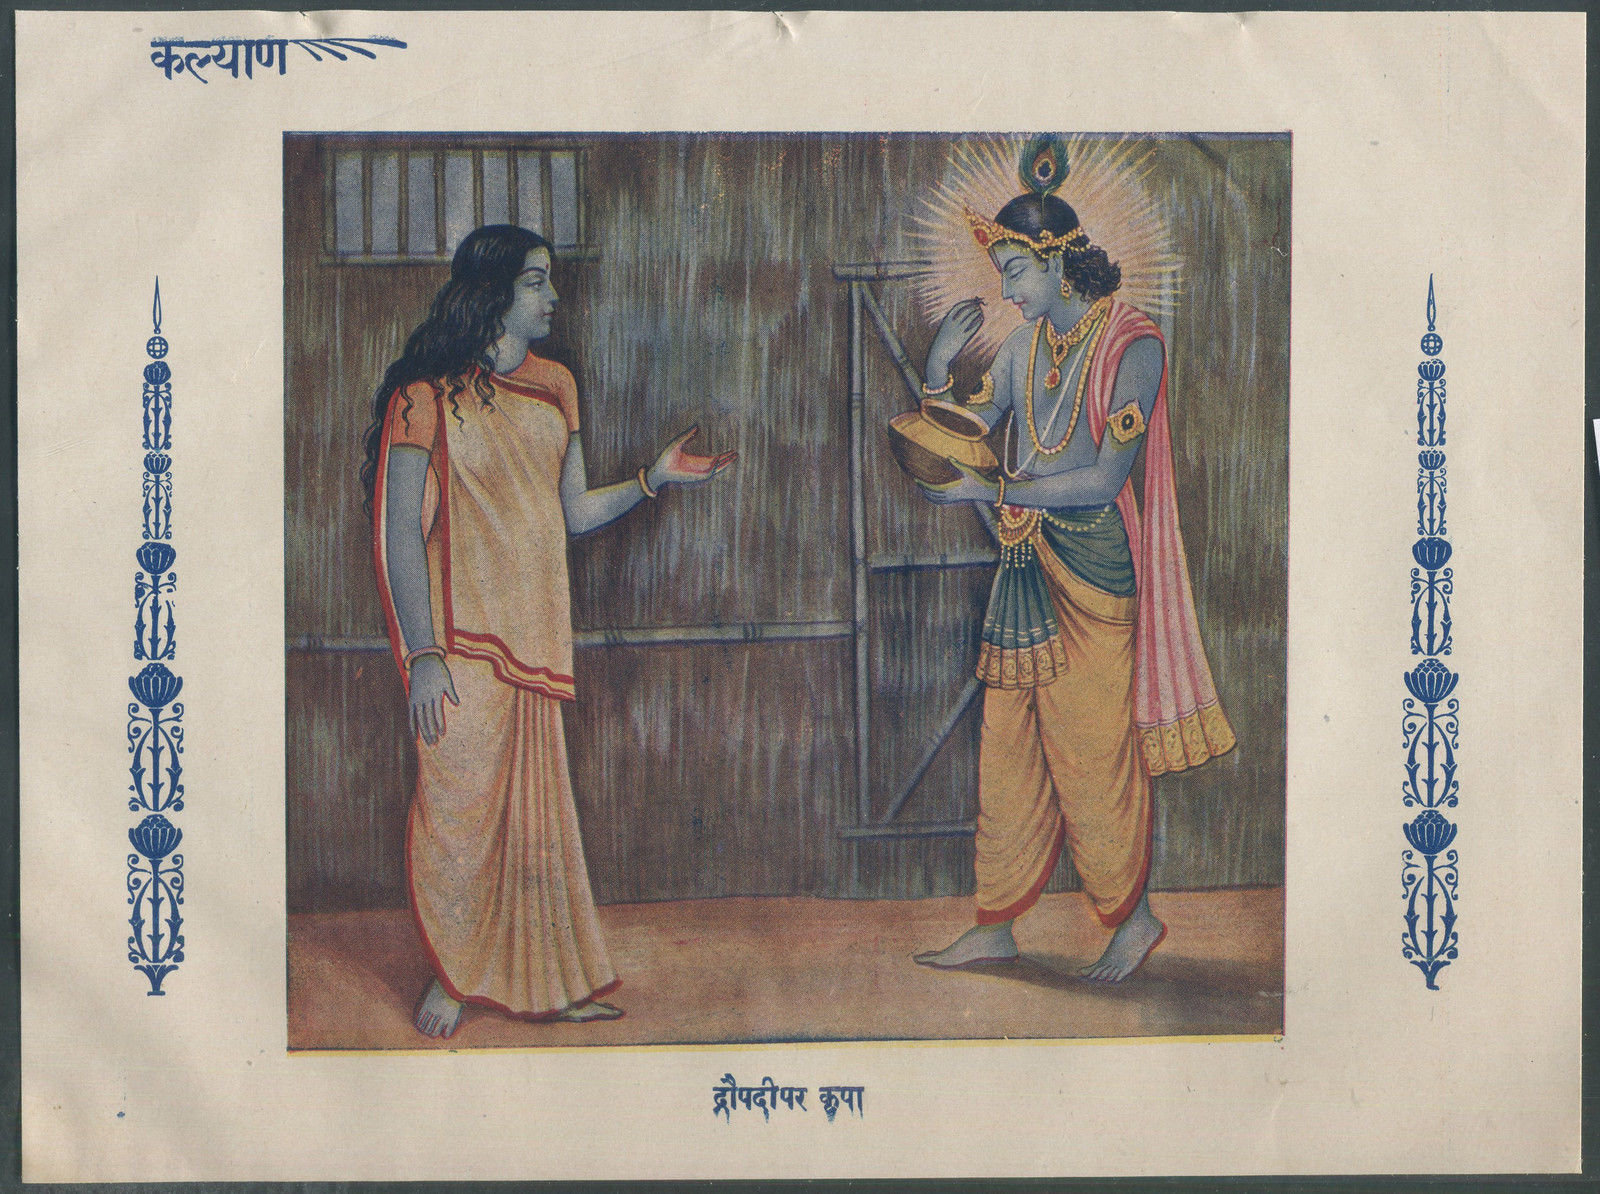 Krishna Eating from Akshya Patra in front of Draupadi - Indian Print 1948